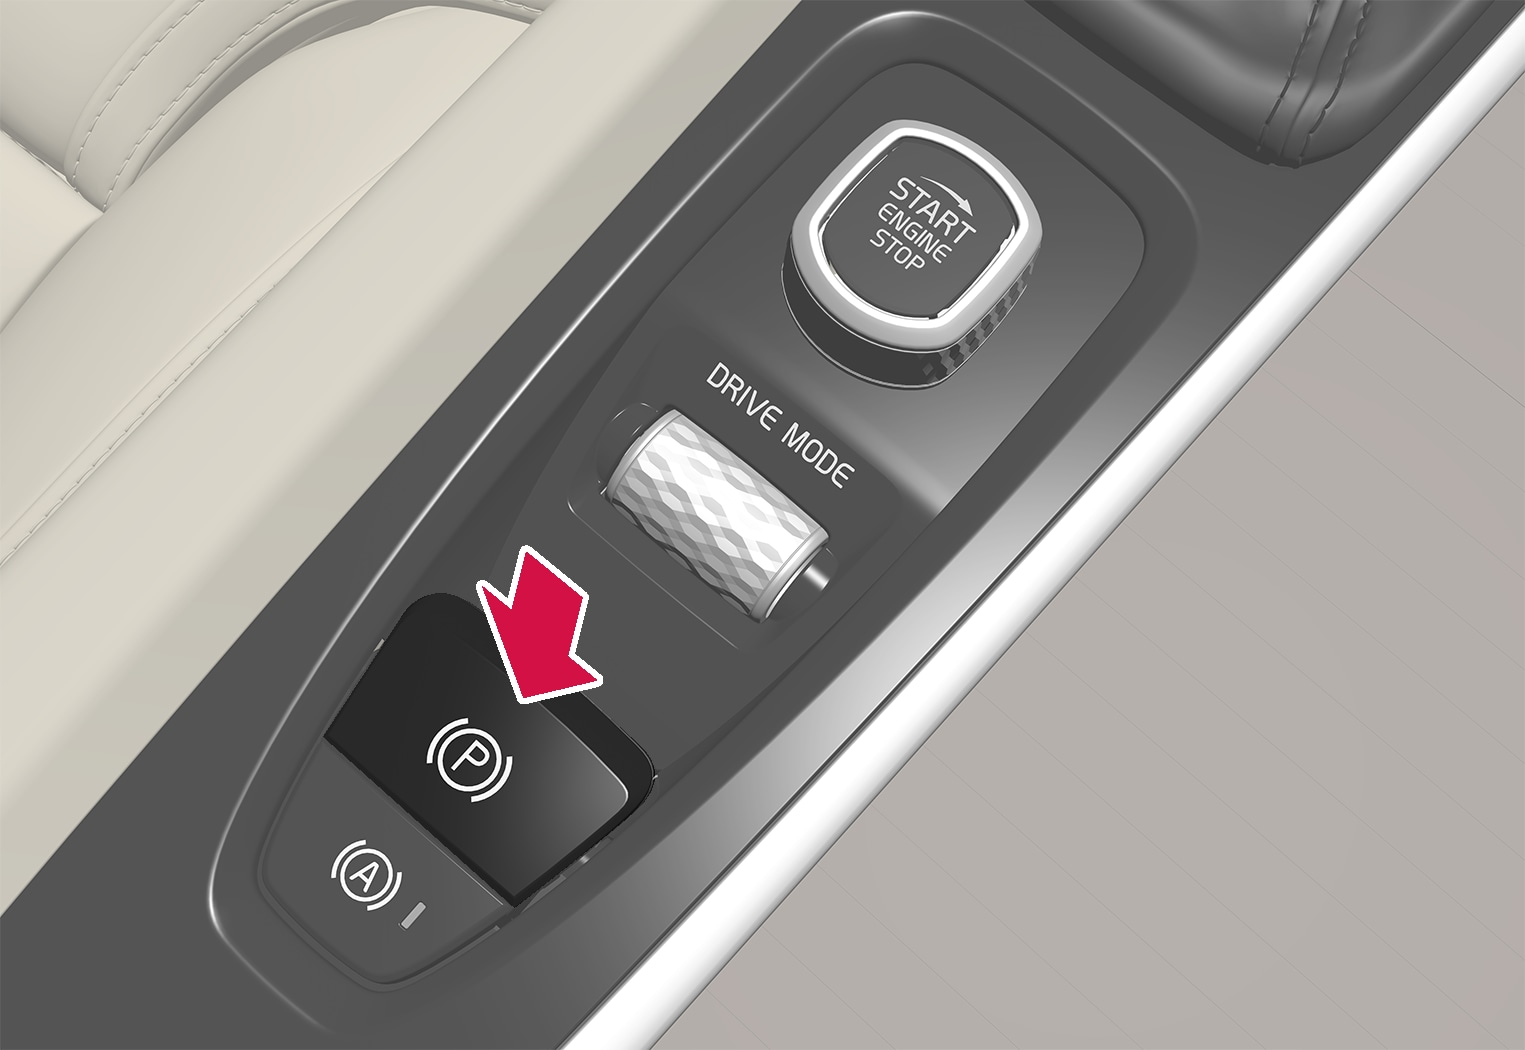 P5-1717-ALL-Parking brake release